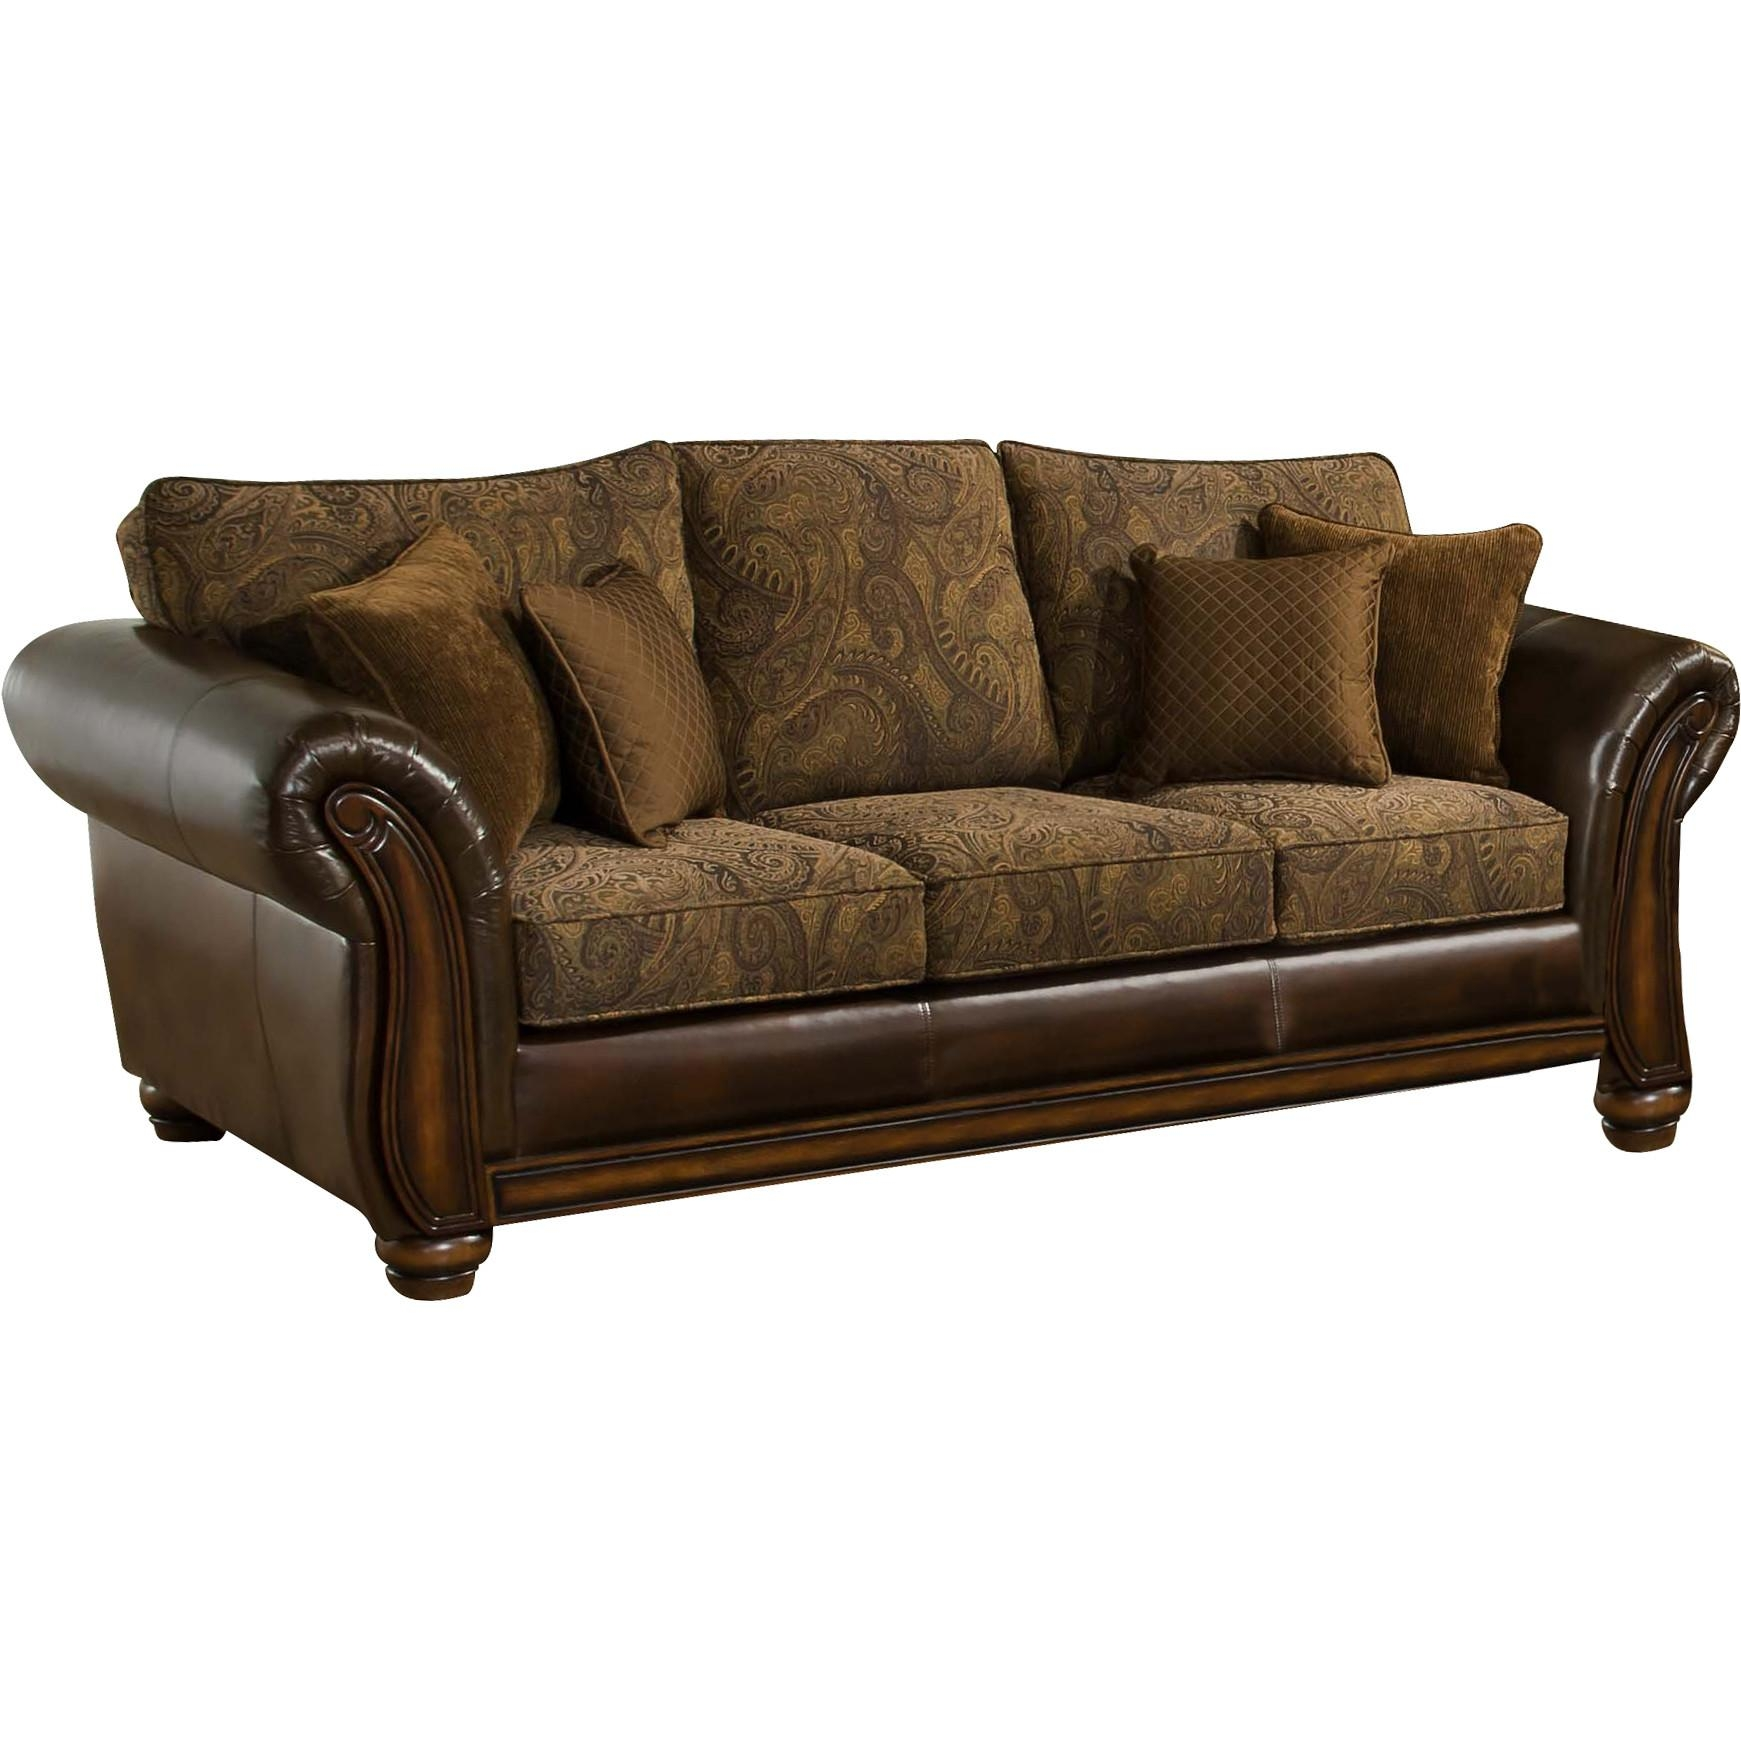 Simmons Upholstery Brown Leather Zephyr Queen Sleeper Sofa | Sofa Regarding Simmons Sleeper Sofas (View 14 of 20)